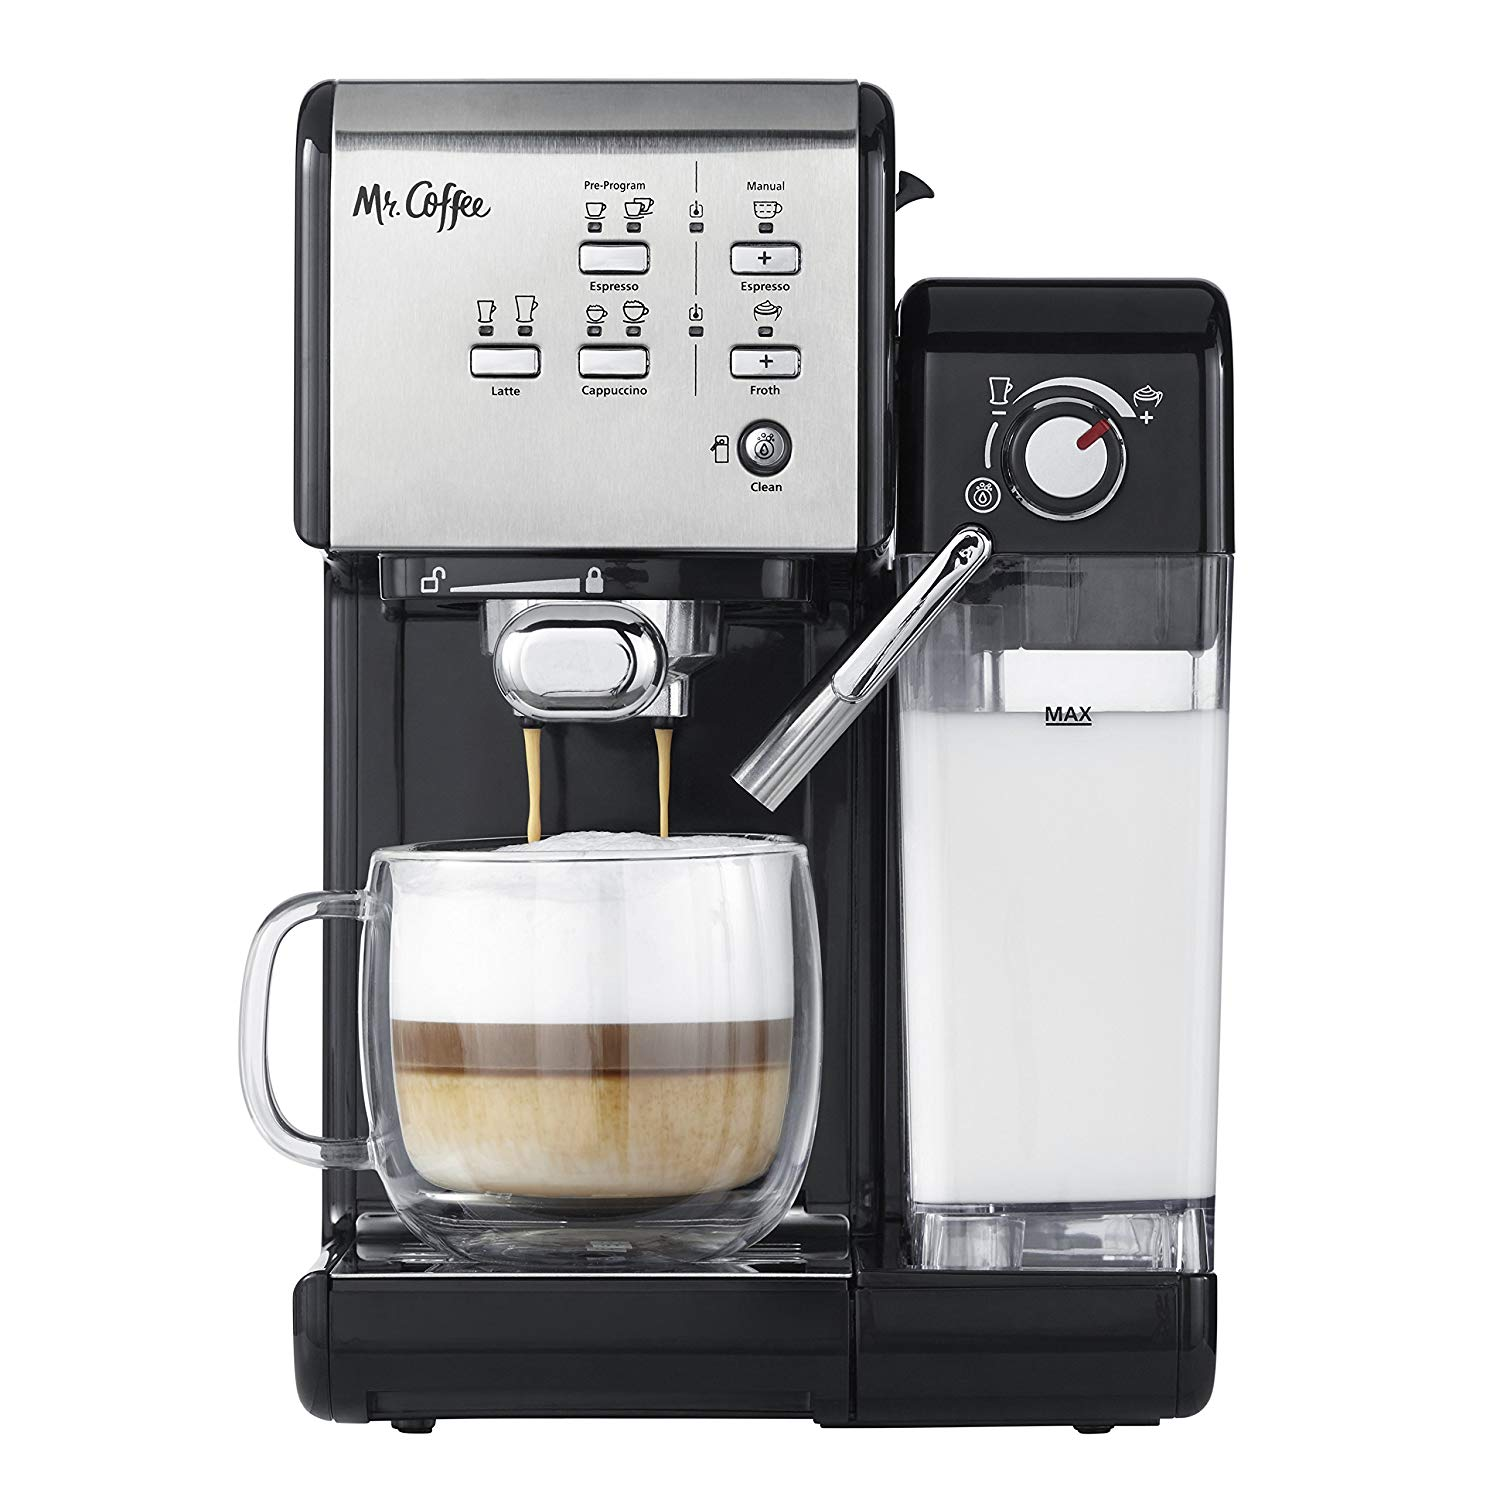 Mr. Coffee One-Touch Coffee House Espresso Maker and Cappuccino Machine